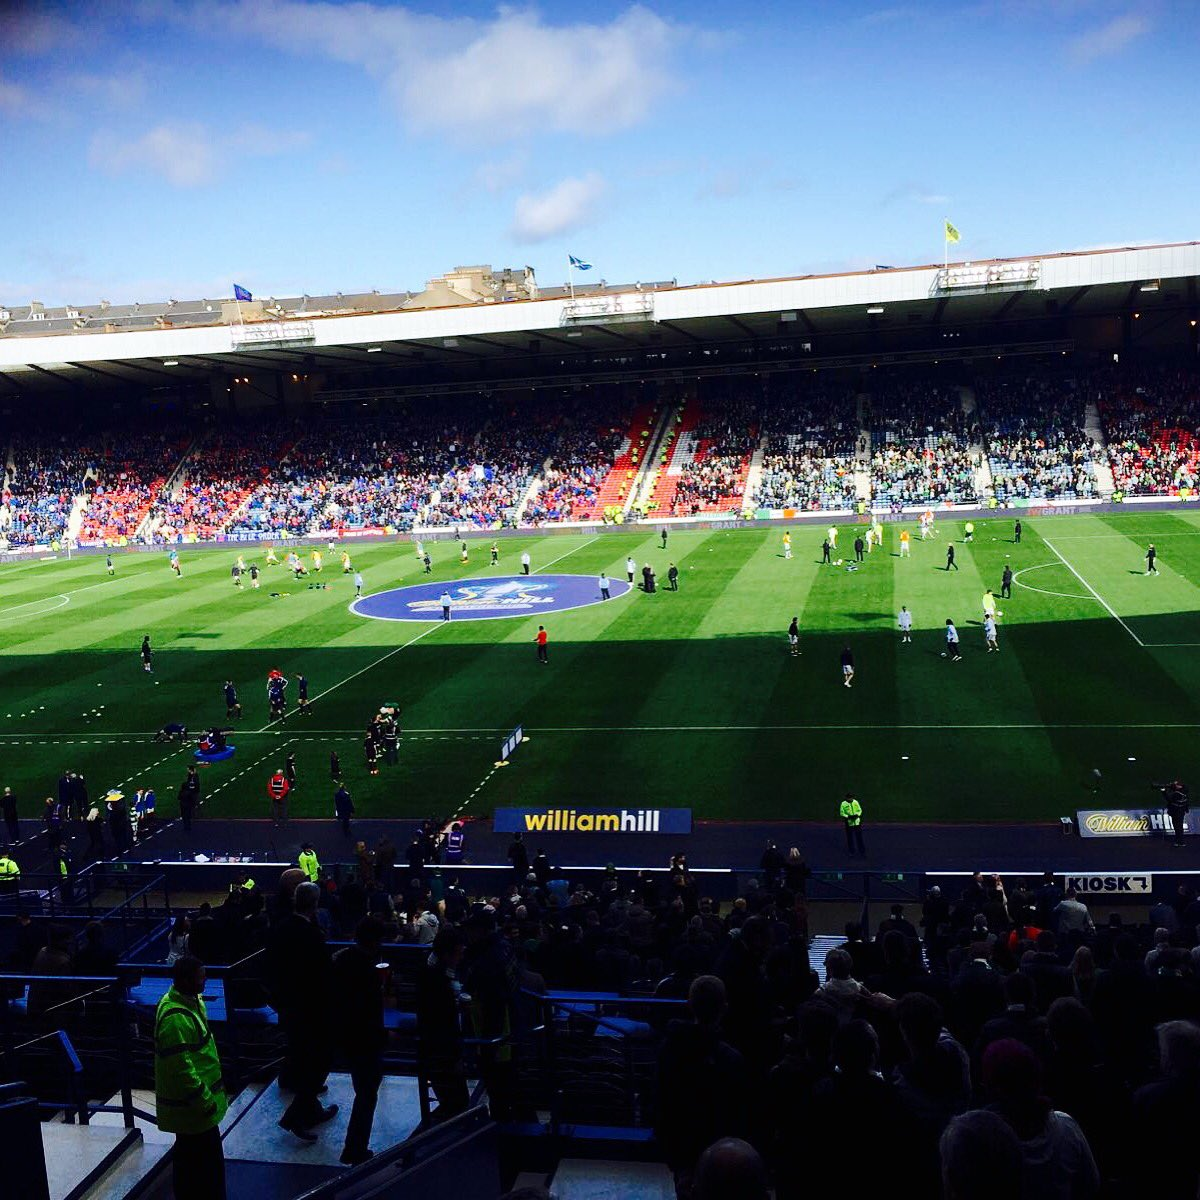 Old firm Derby time @RangersFC @celticfc #ViolaFC https://t.co/i5BEpbpBwn